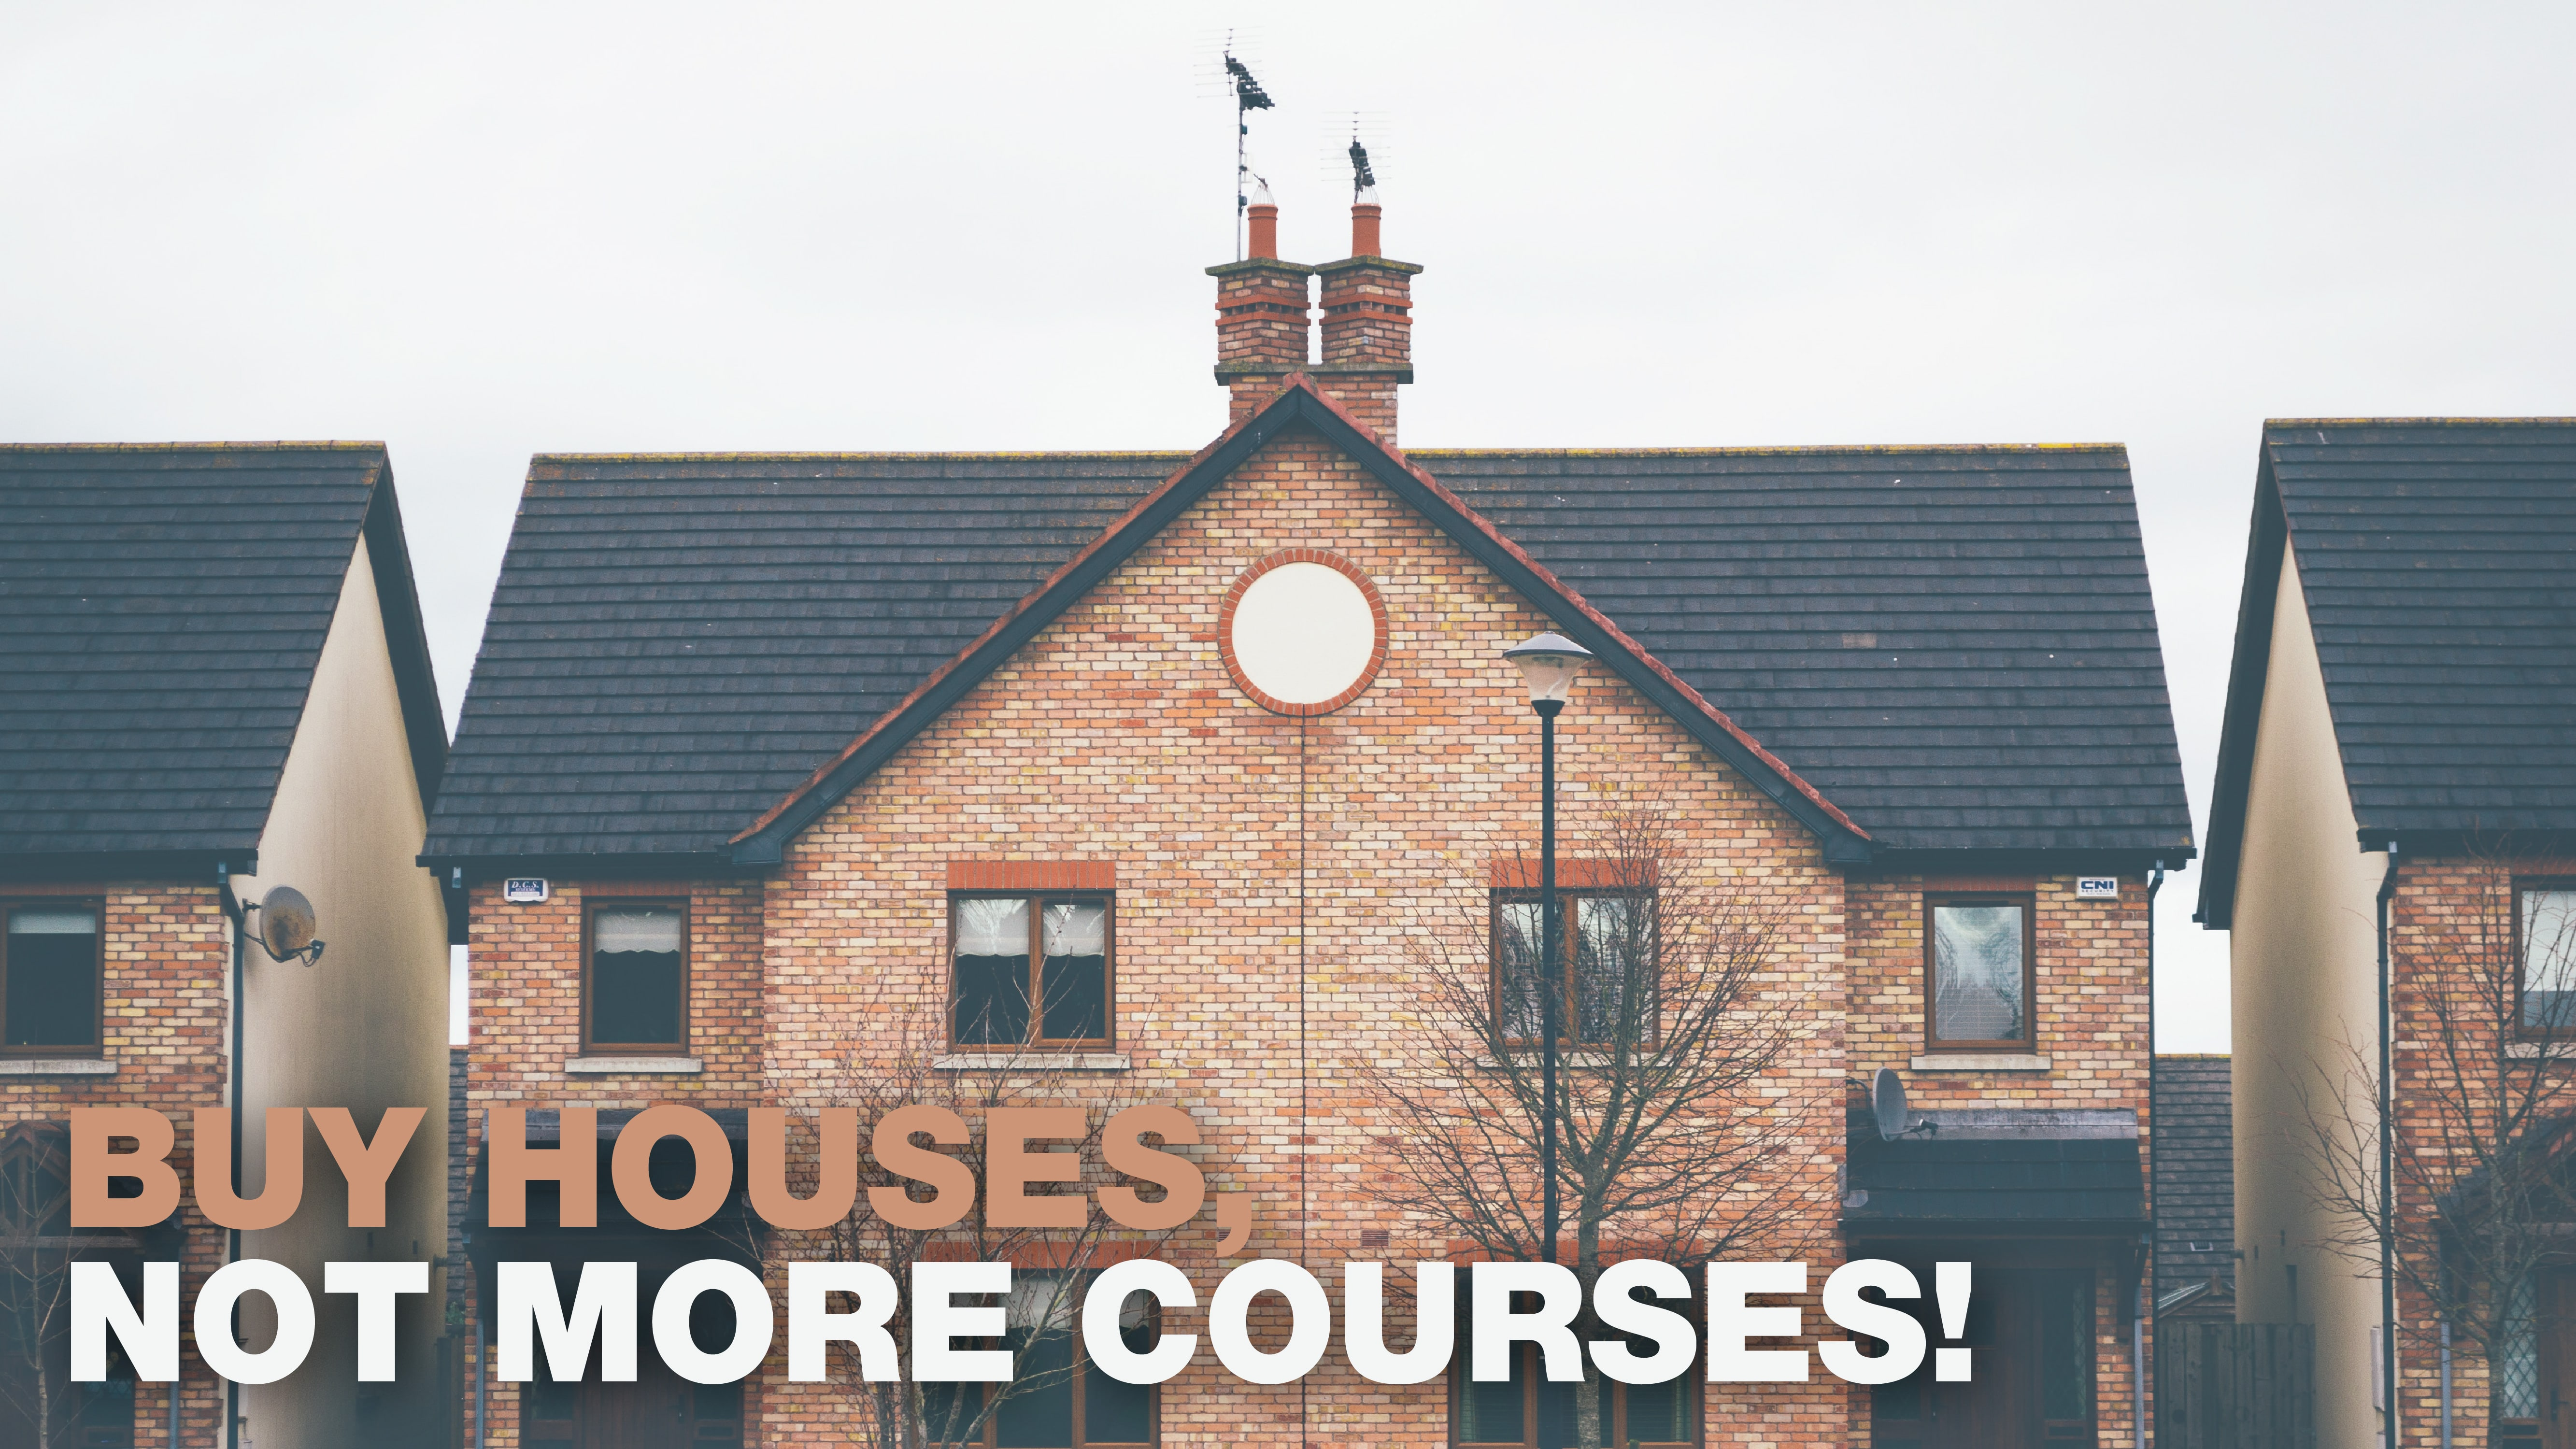 Buy houses, not more courses!